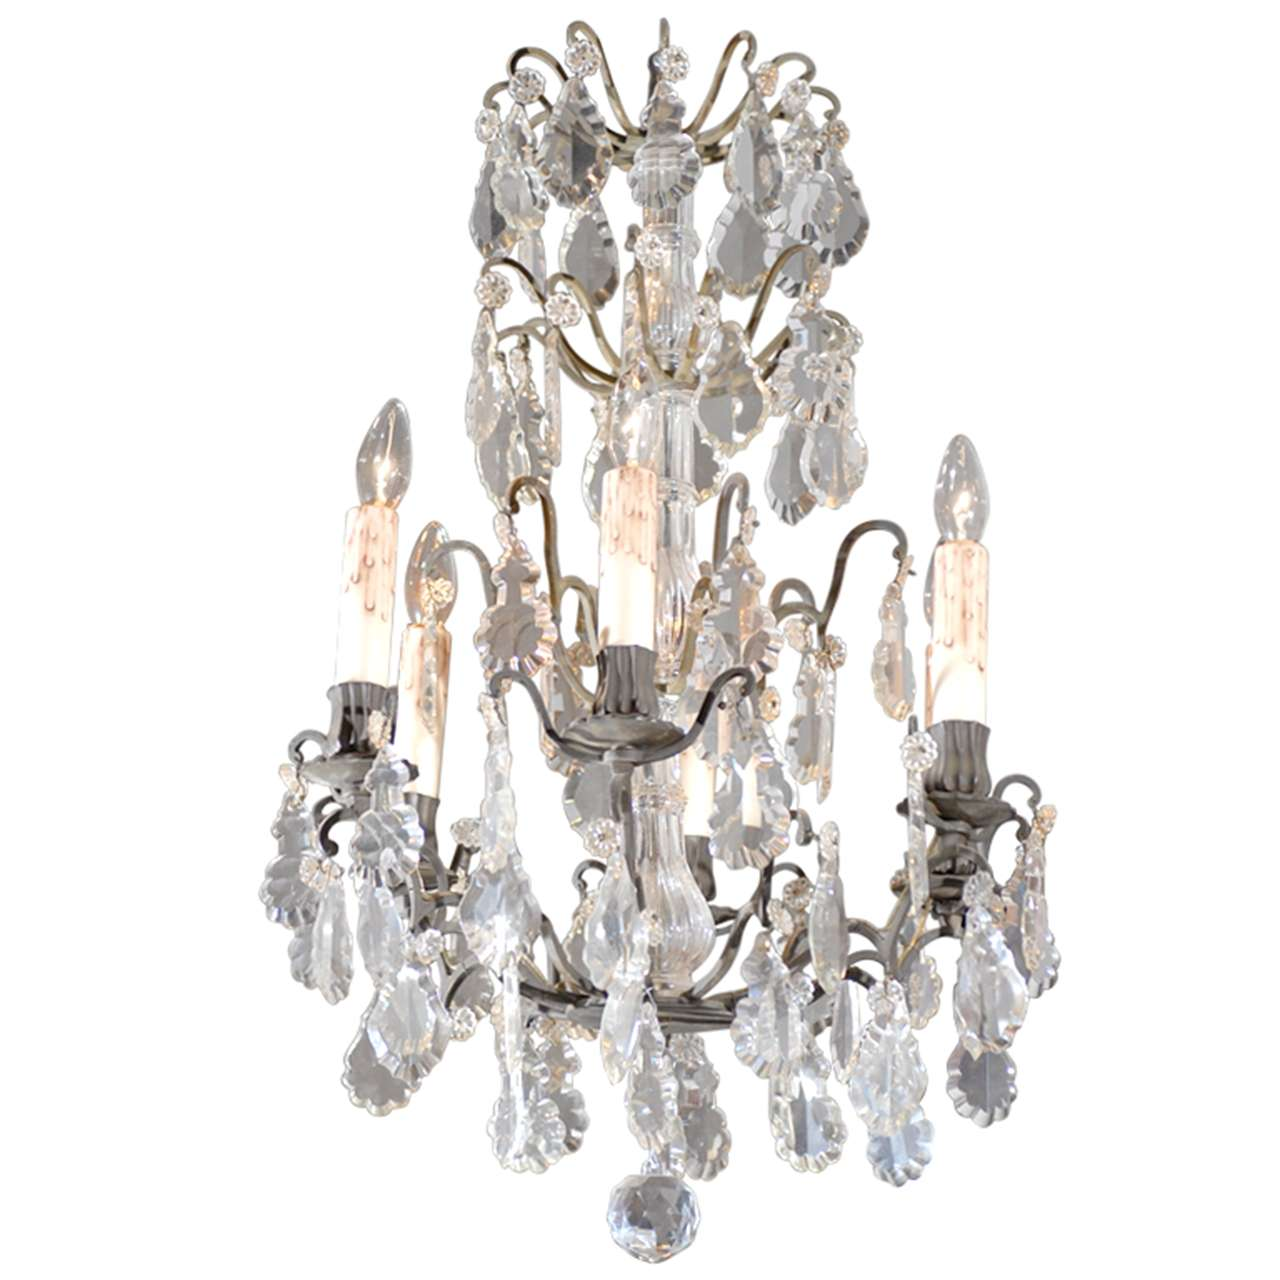 Rococo Revival French Six-Light Crystal Chandelier with Flower Bobeches, 1890s